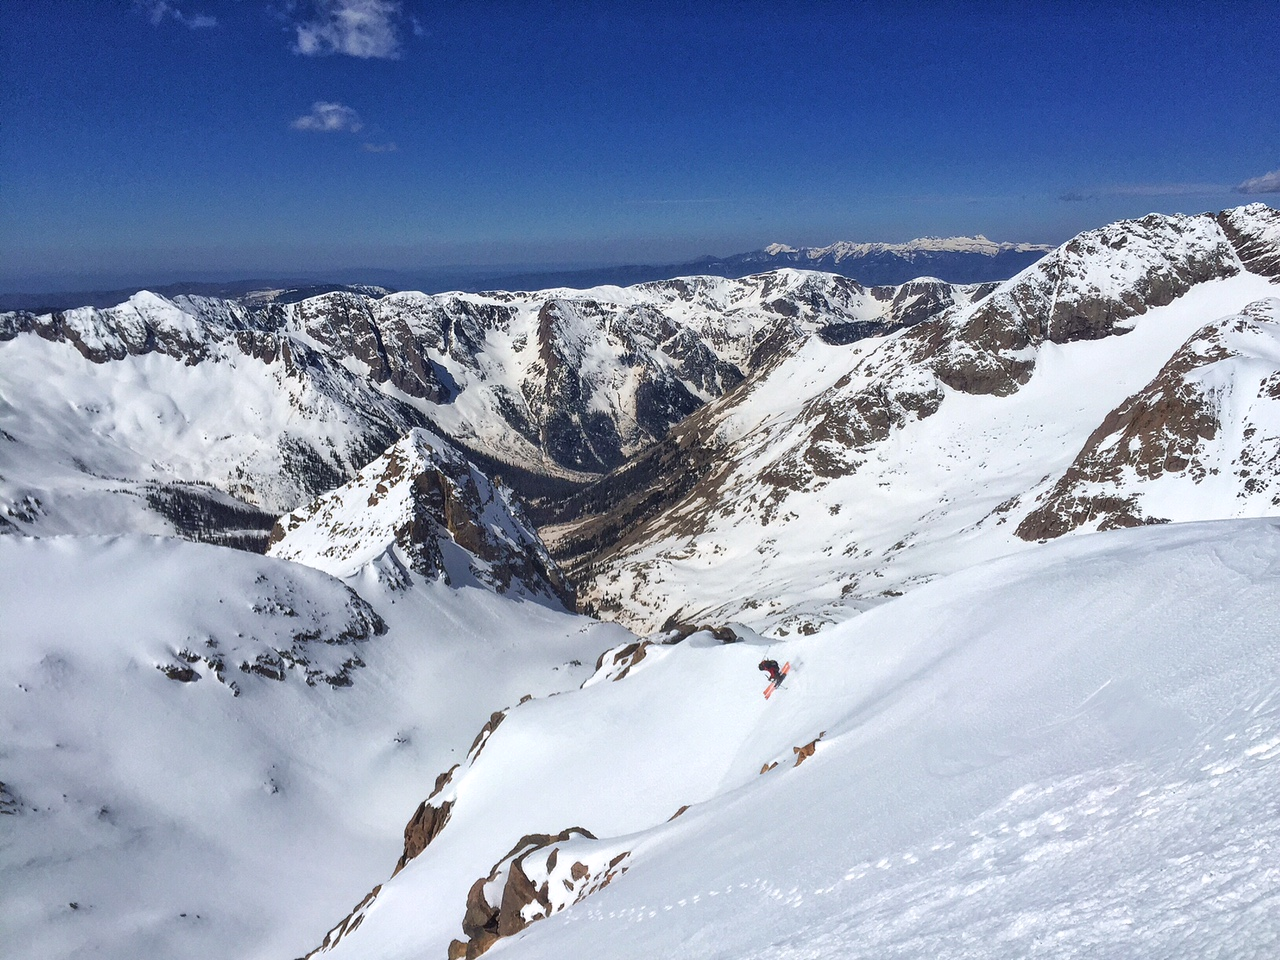 Skiing off Sunlight 14er.